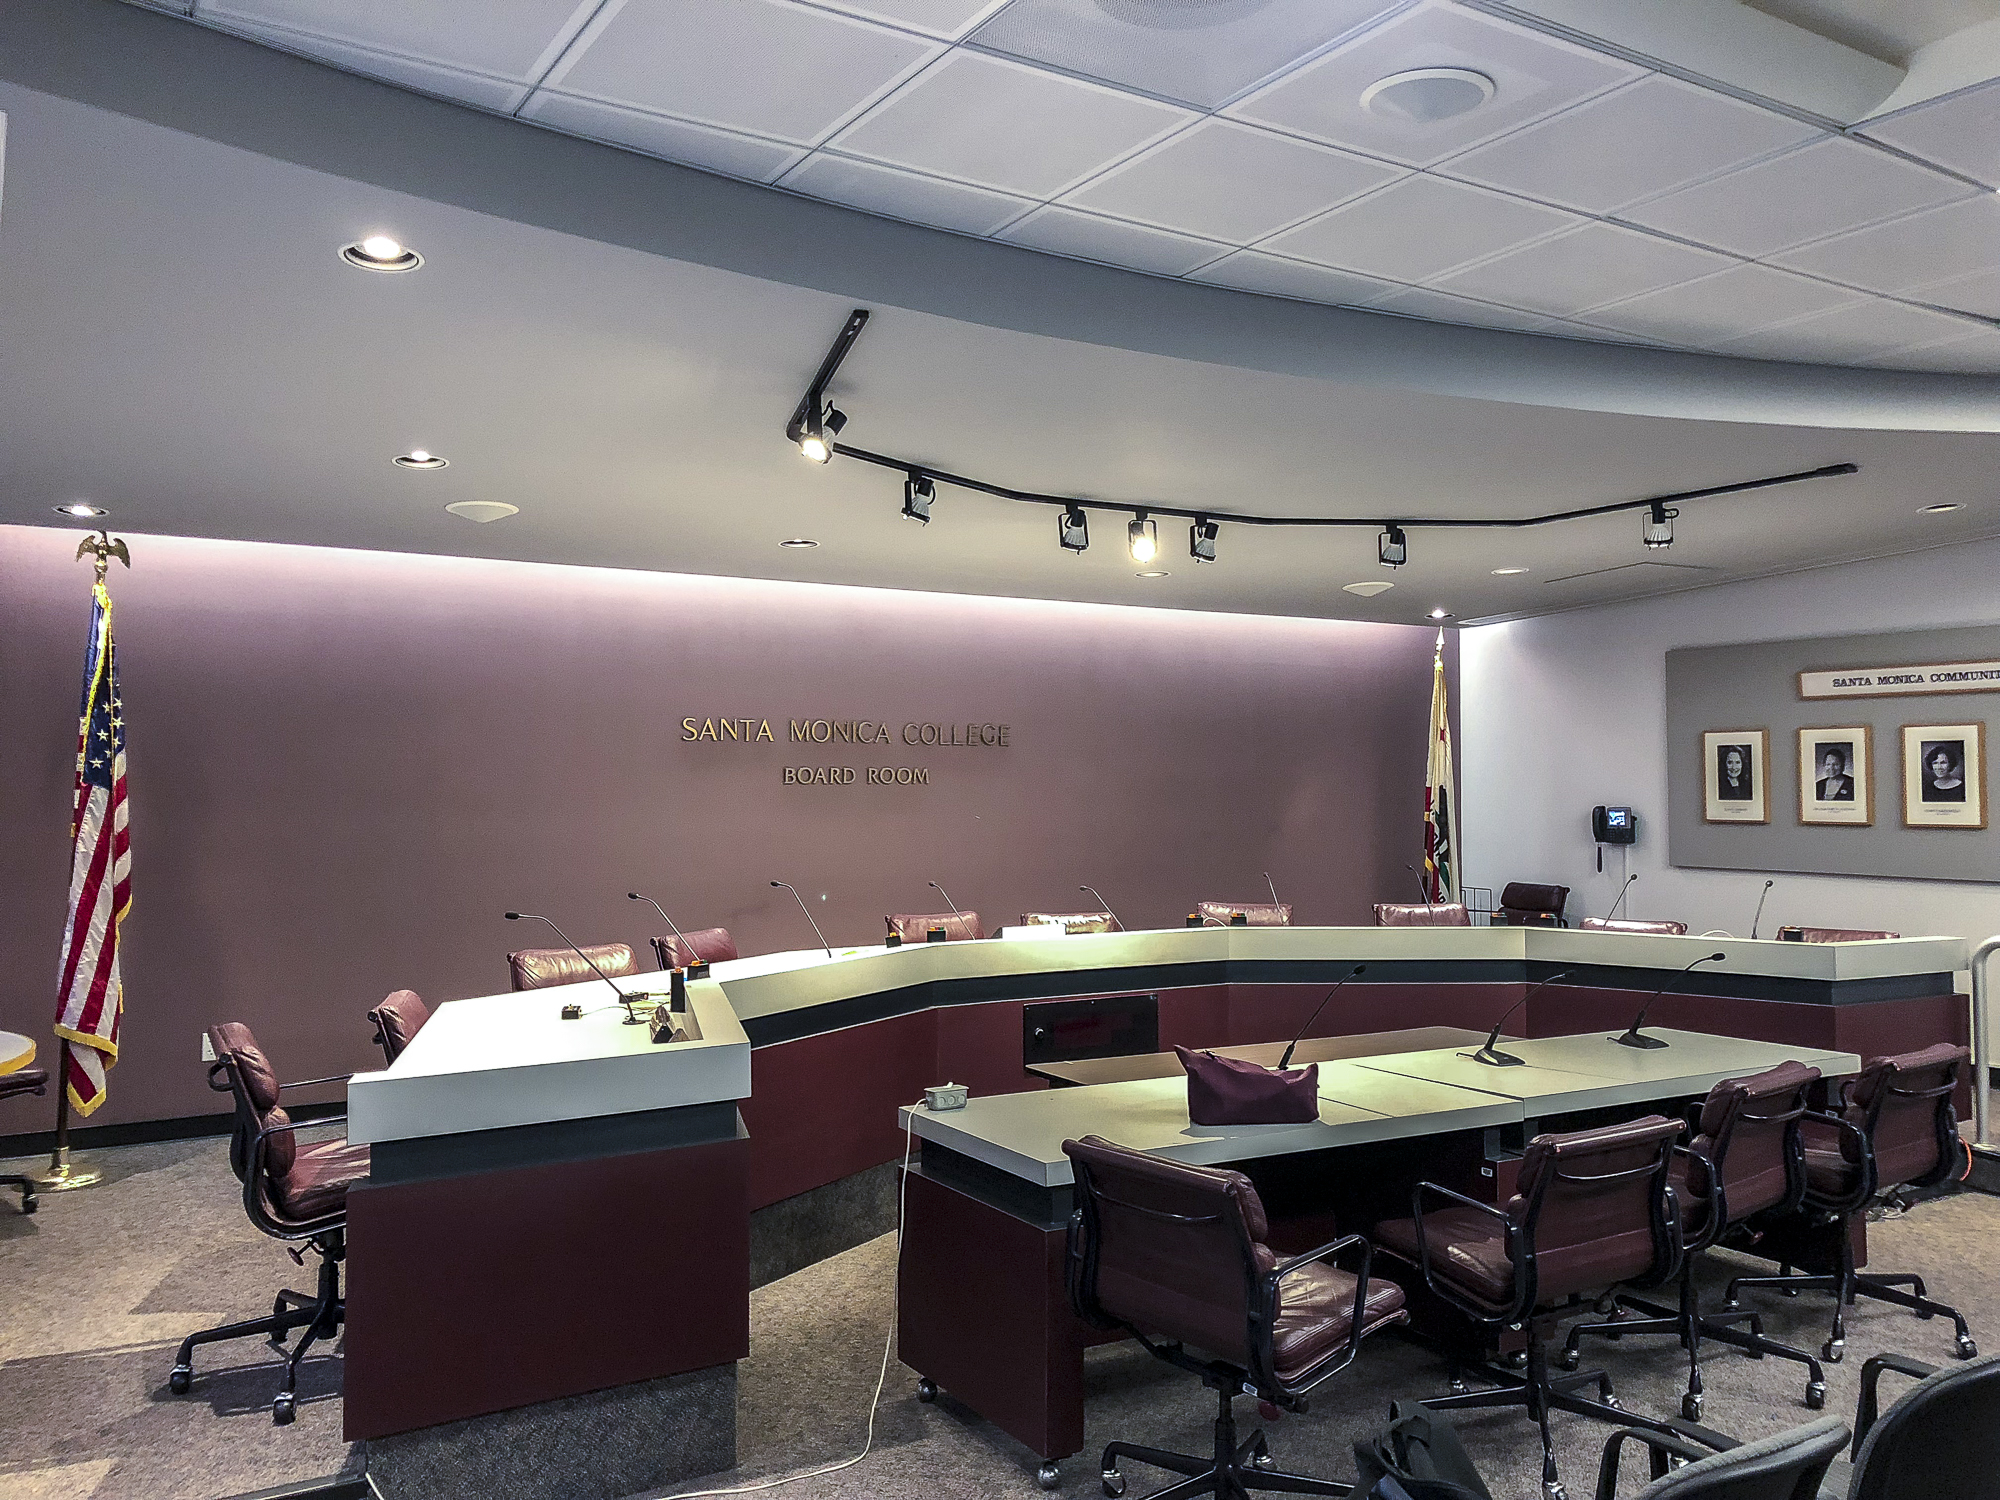 Santa Monica College's Board Room in the Business Building at SMC in Santa Monica, California on March 20, 2018 before the Board of Trustees meeting commenced.